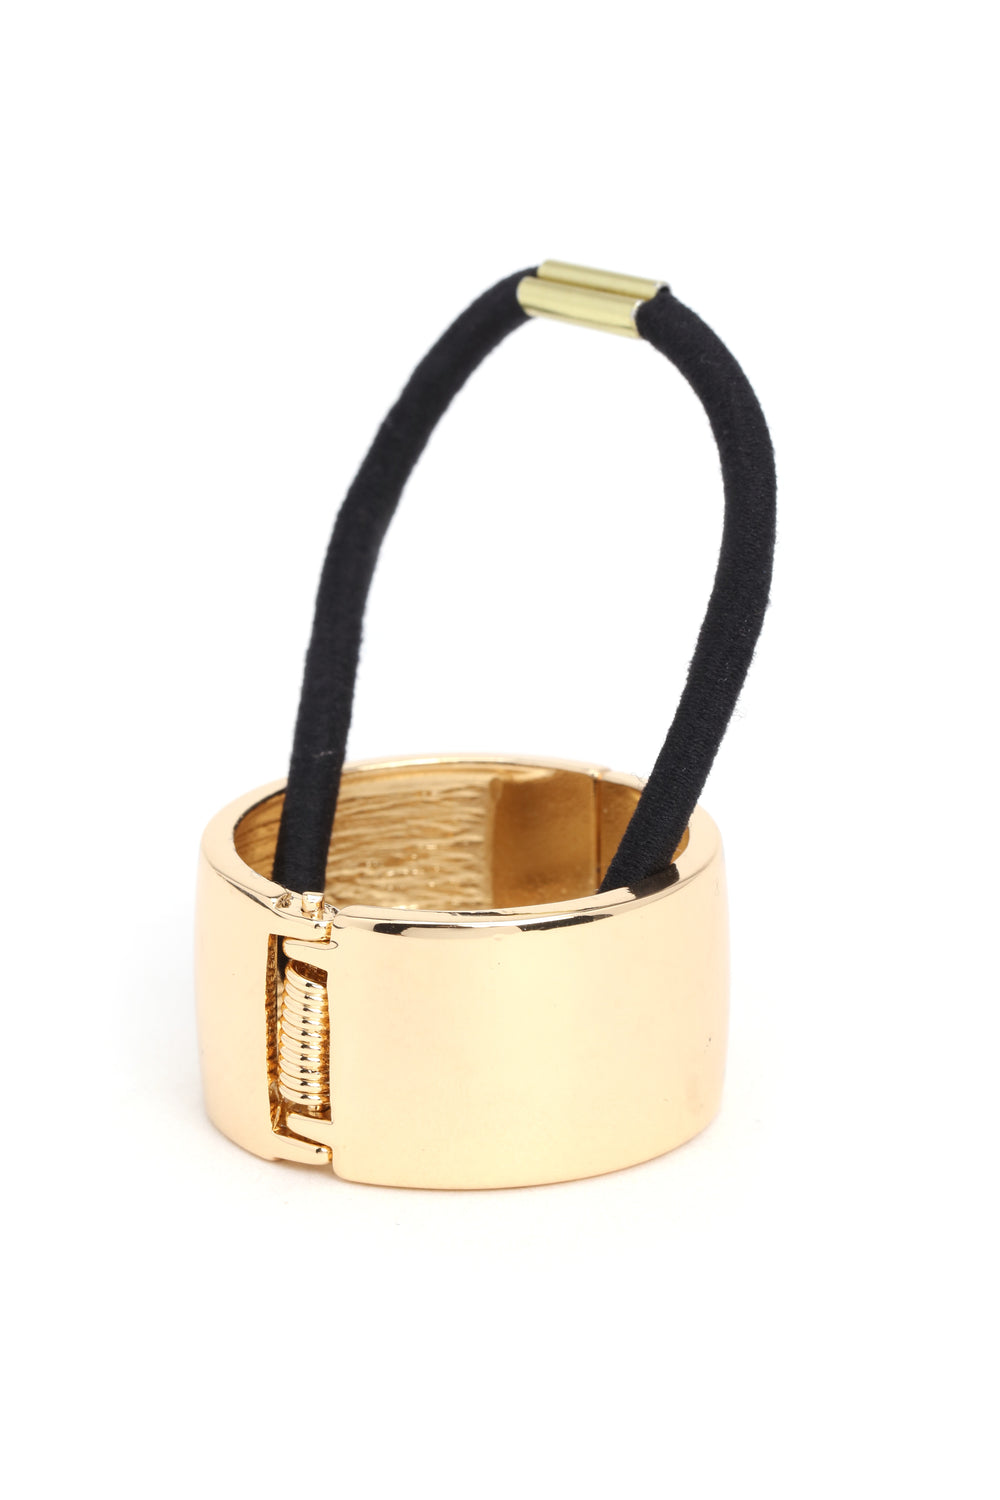 Medalling In My Hair Cuff - Gold